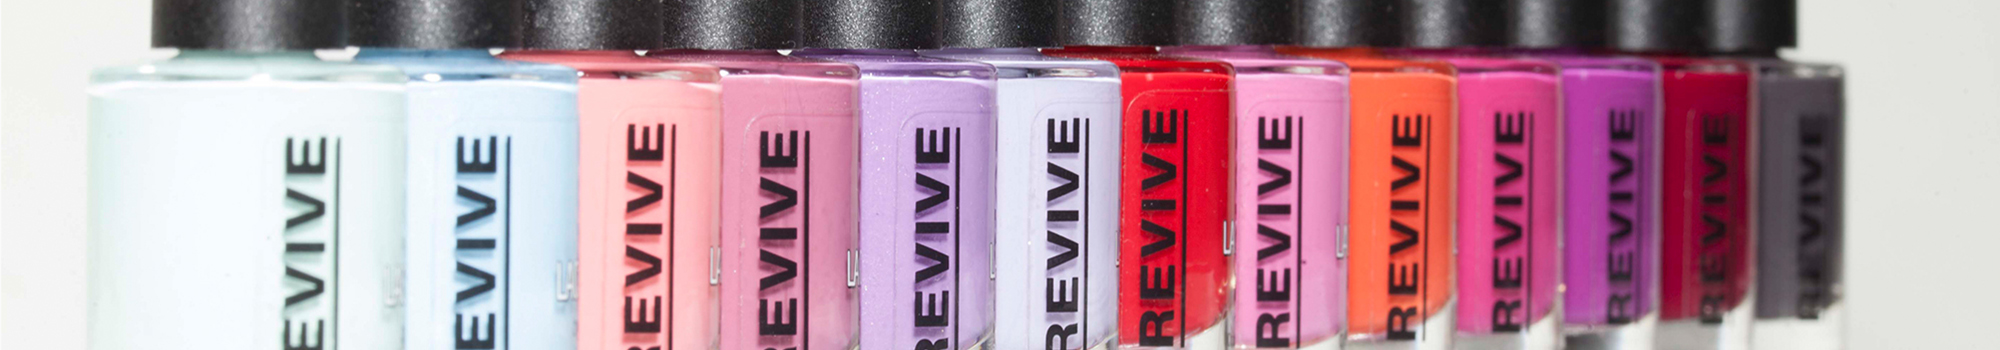 Line of Revive Colors